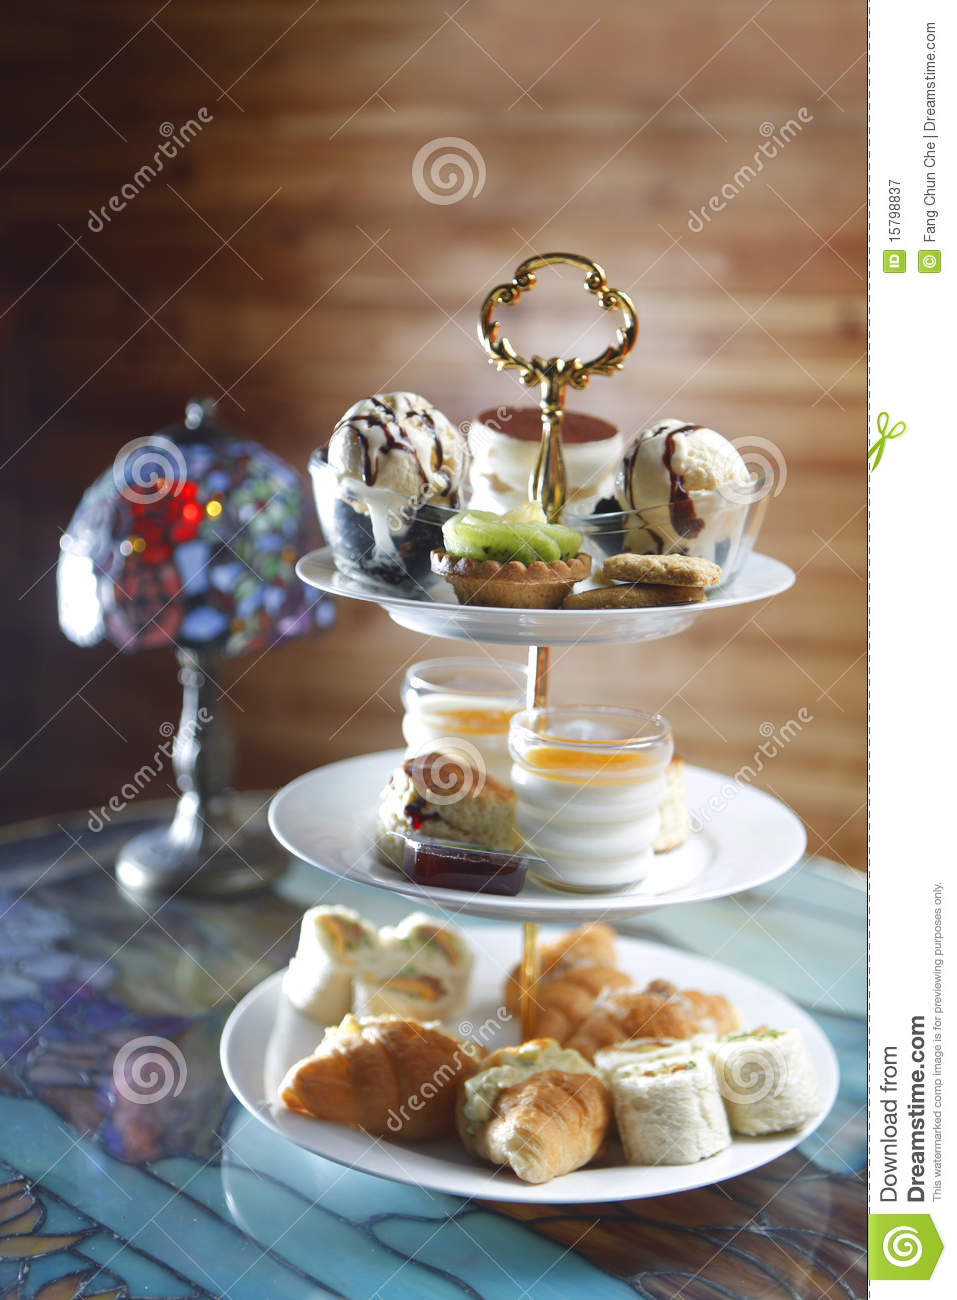 High Tea Stock Image Image Of Pastry Baked Cover